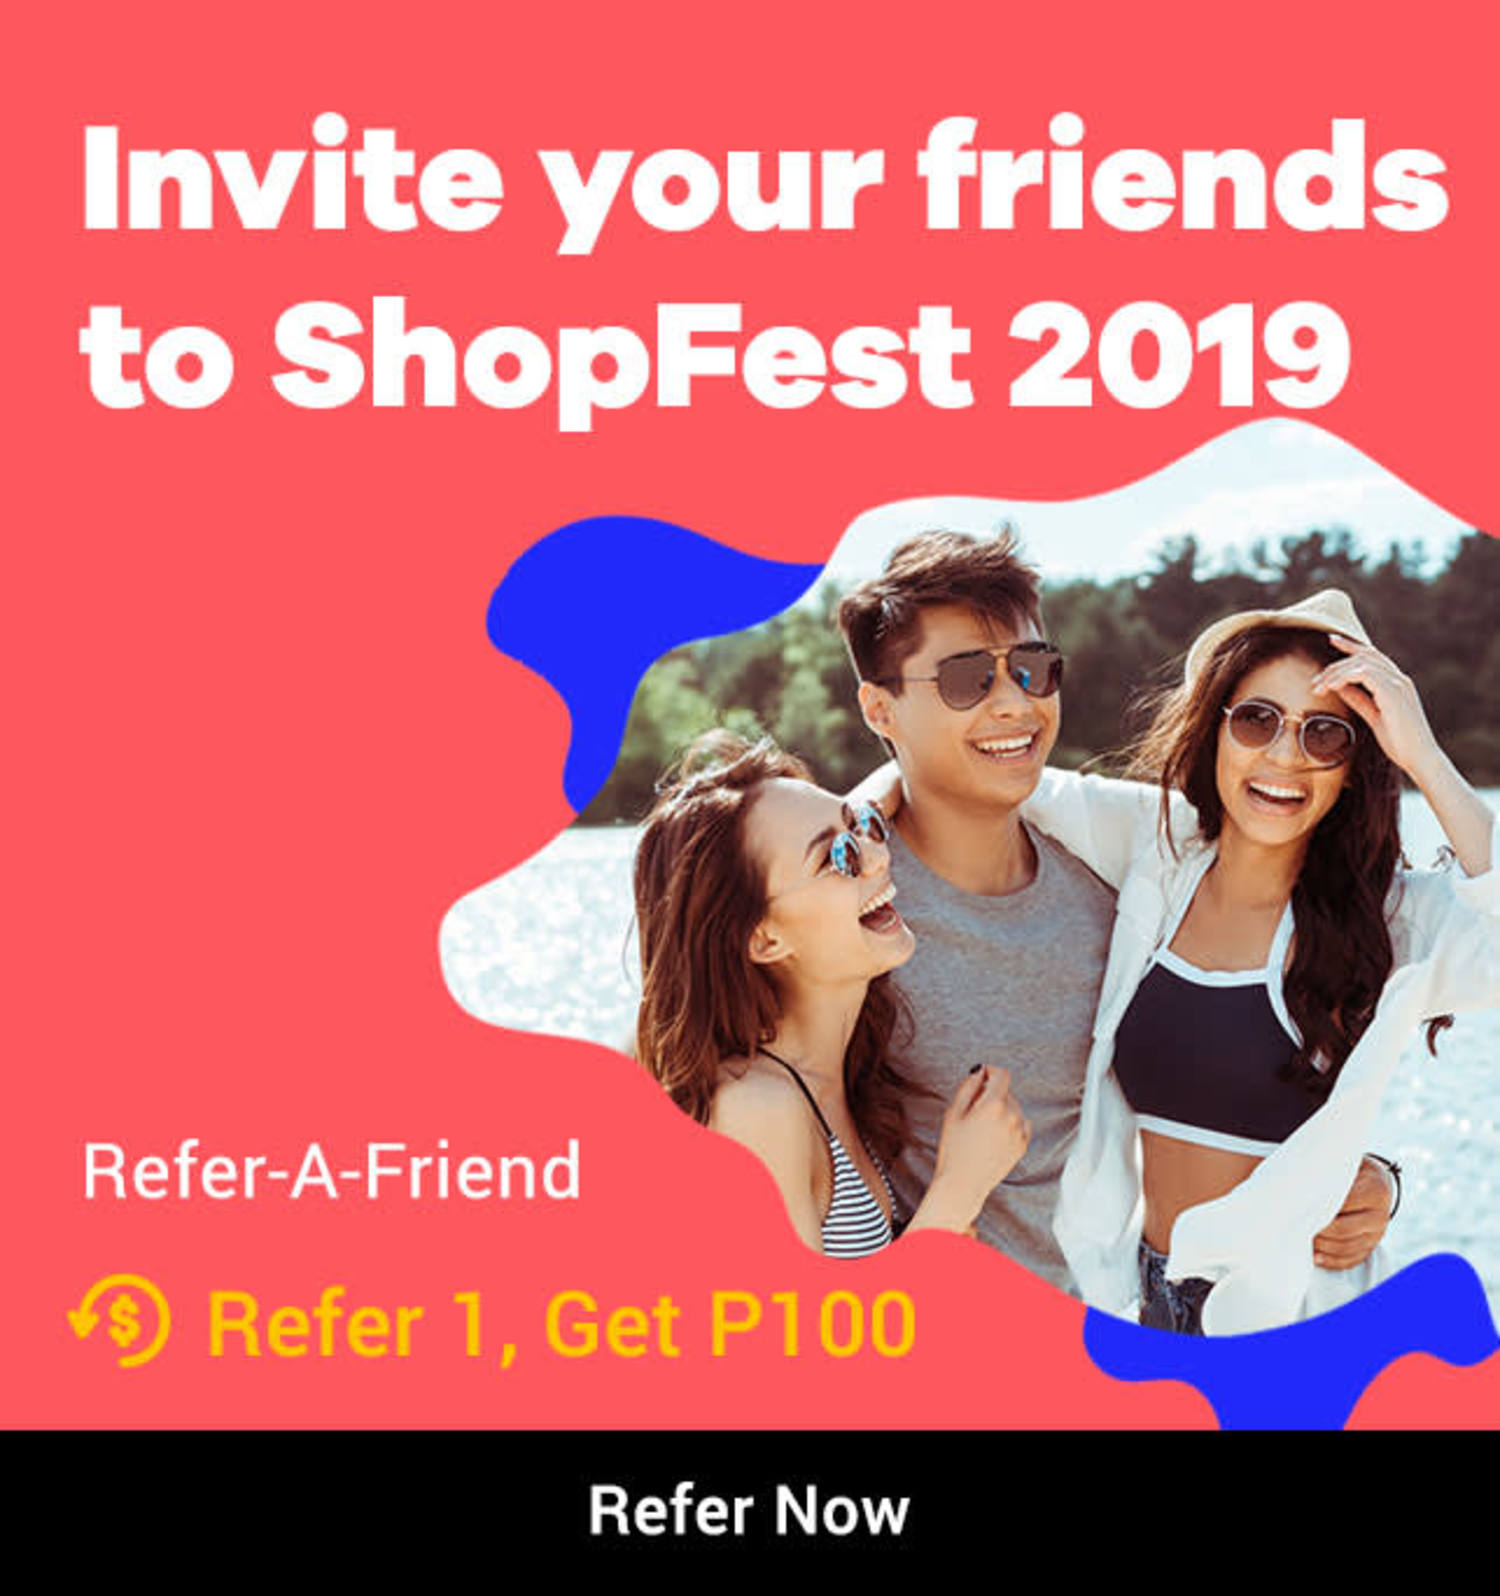 Refer-a-Friend: Get P100 Bonus Cashback